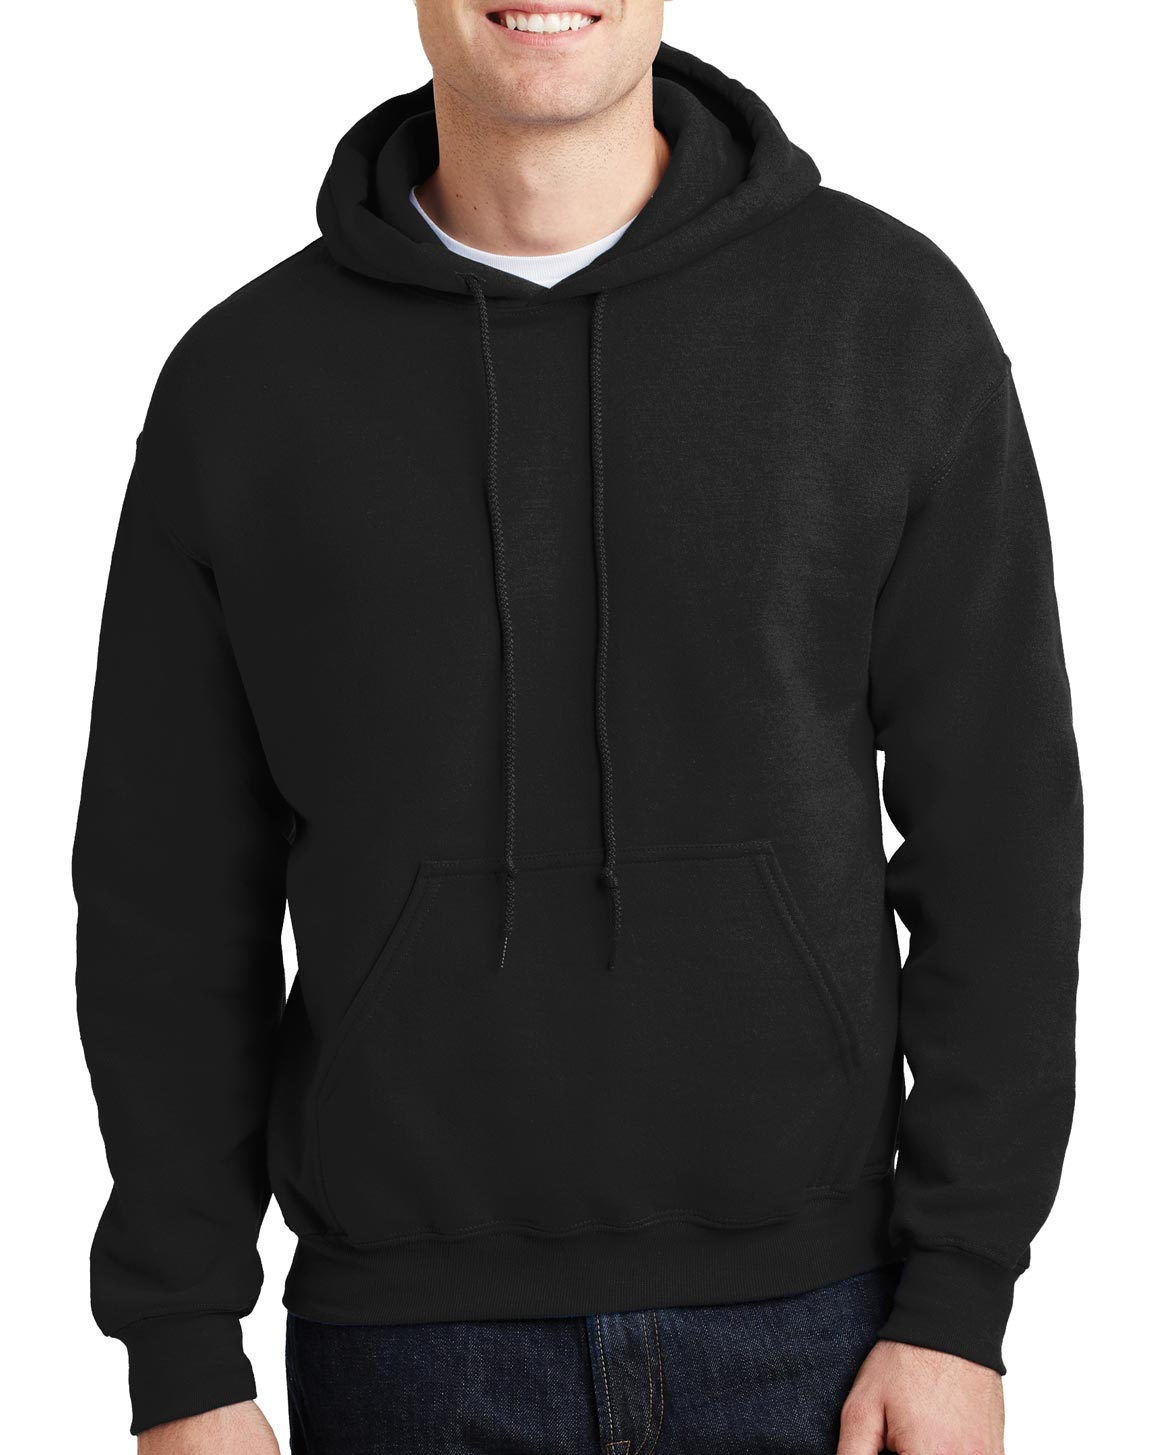 Gildan Adult  Blend Hooded Sweatshirt